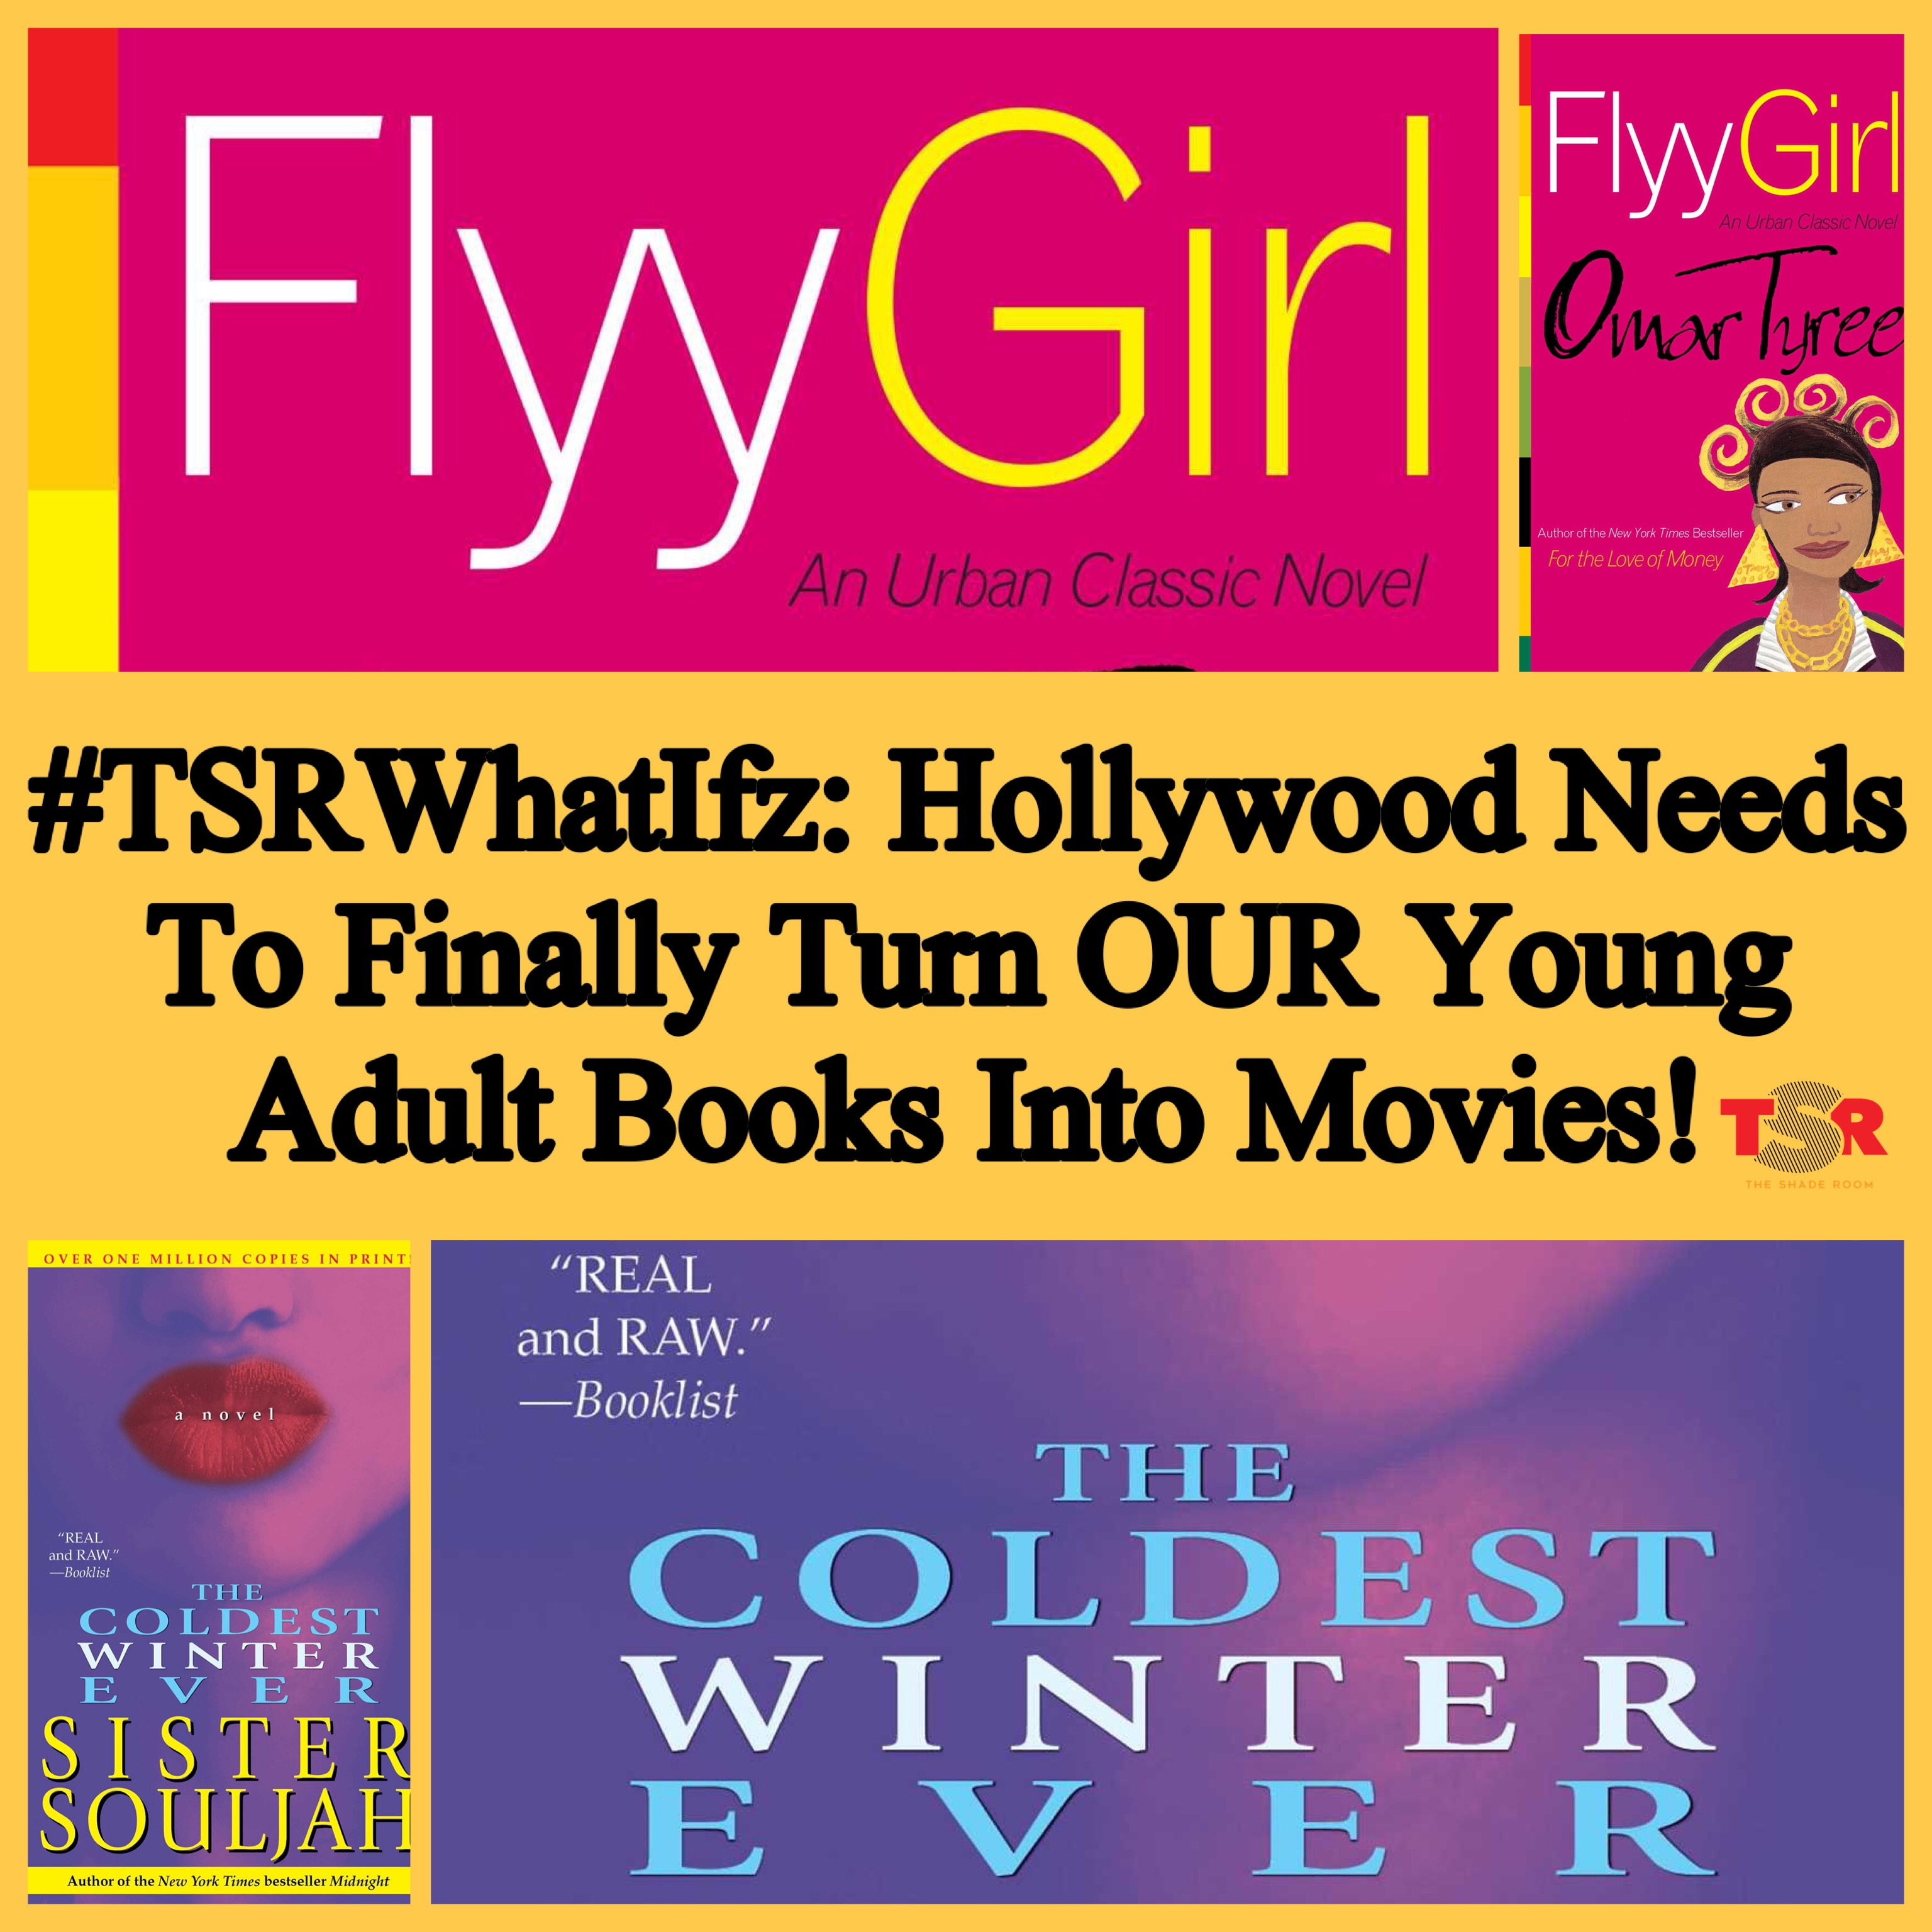 Hollywood Needs To Finally Turn OUR Young Adult Books Into Movies